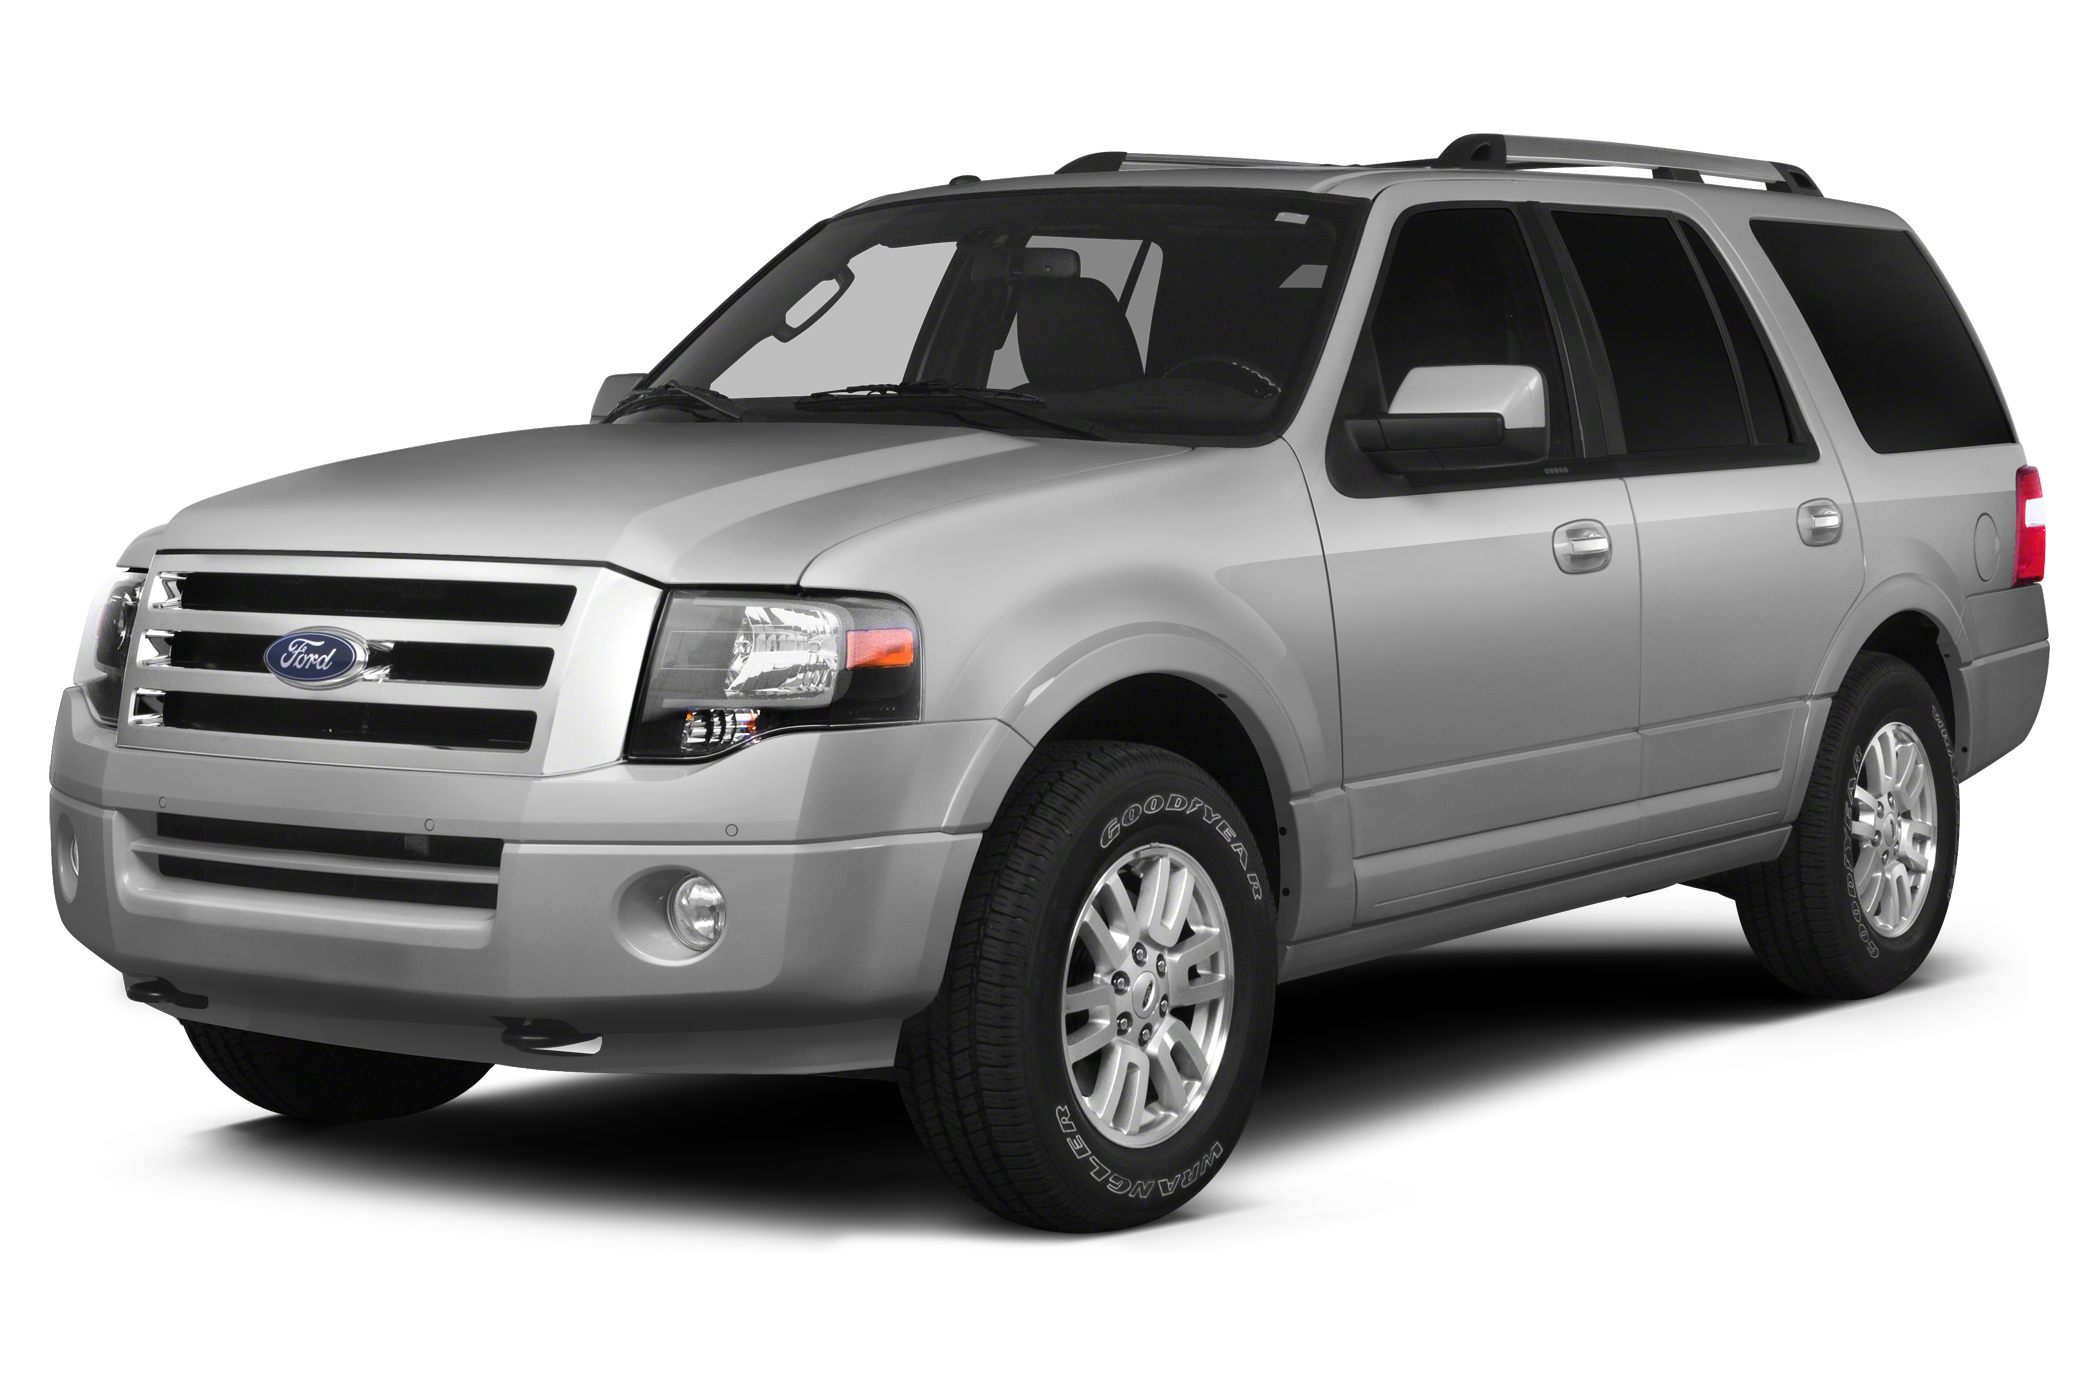 2014 Ford Expedition Limited SUV for sale in Whiteville for $41,900 with 32,532 miles